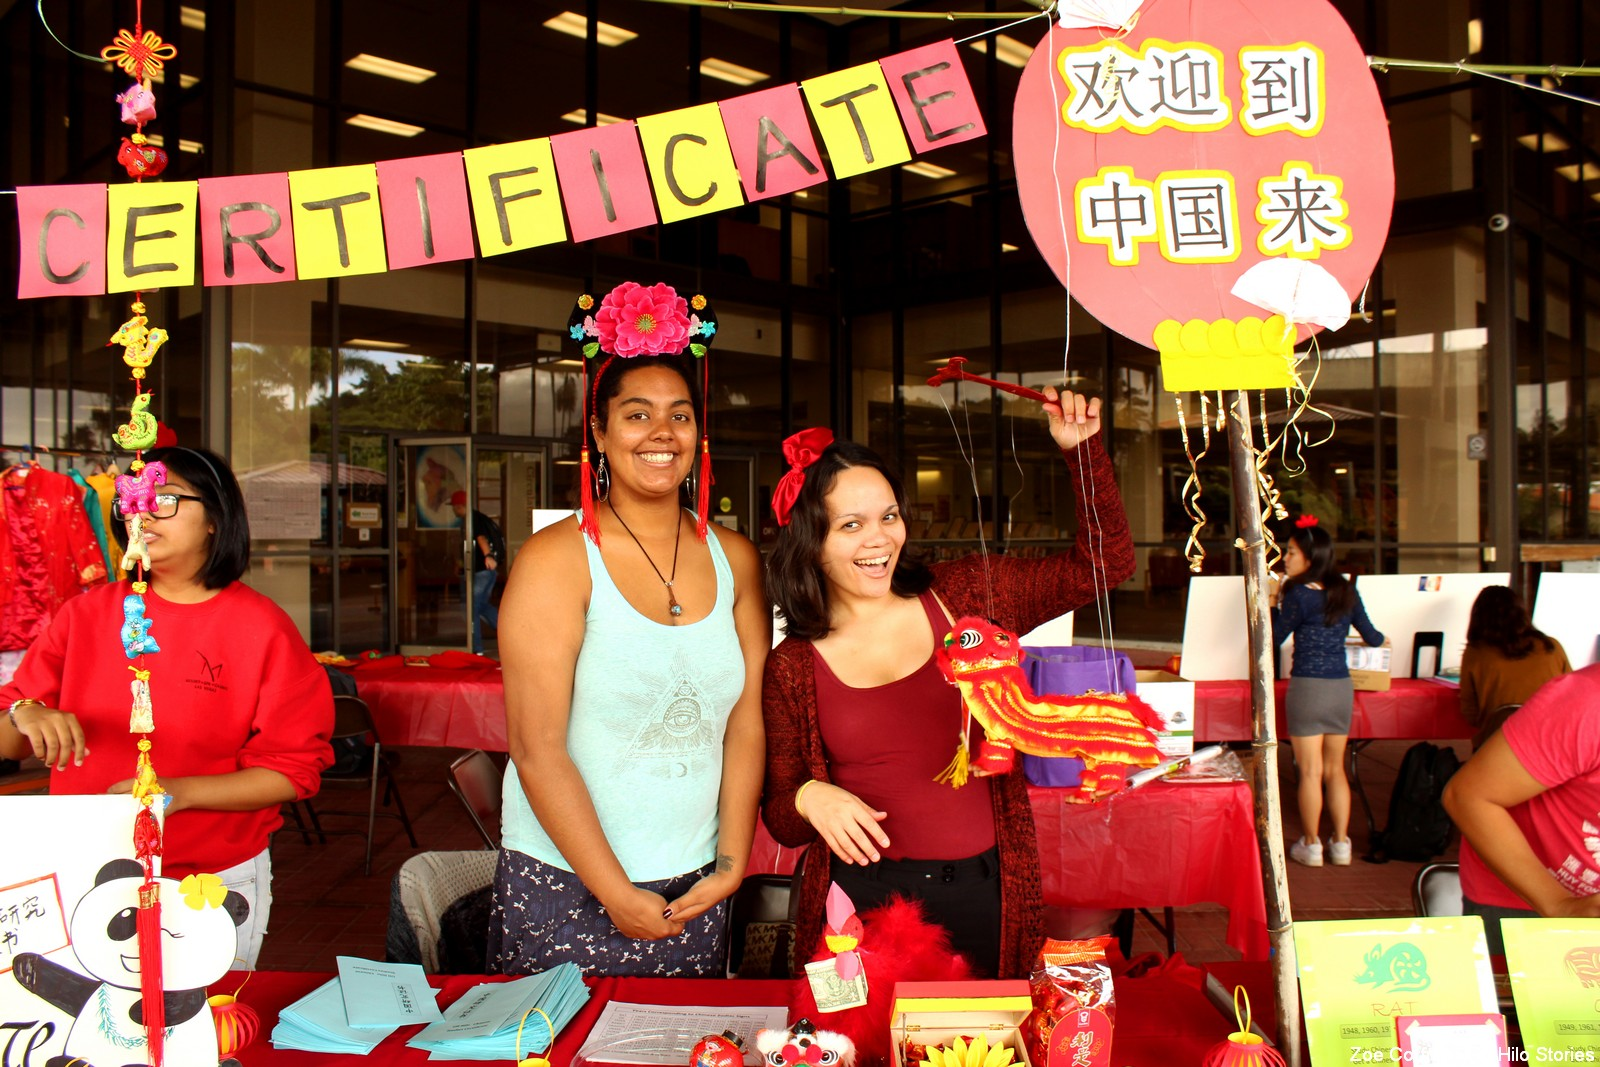 Two students at a booth, very colorful with Chinese decorations, calligraphy, banner.